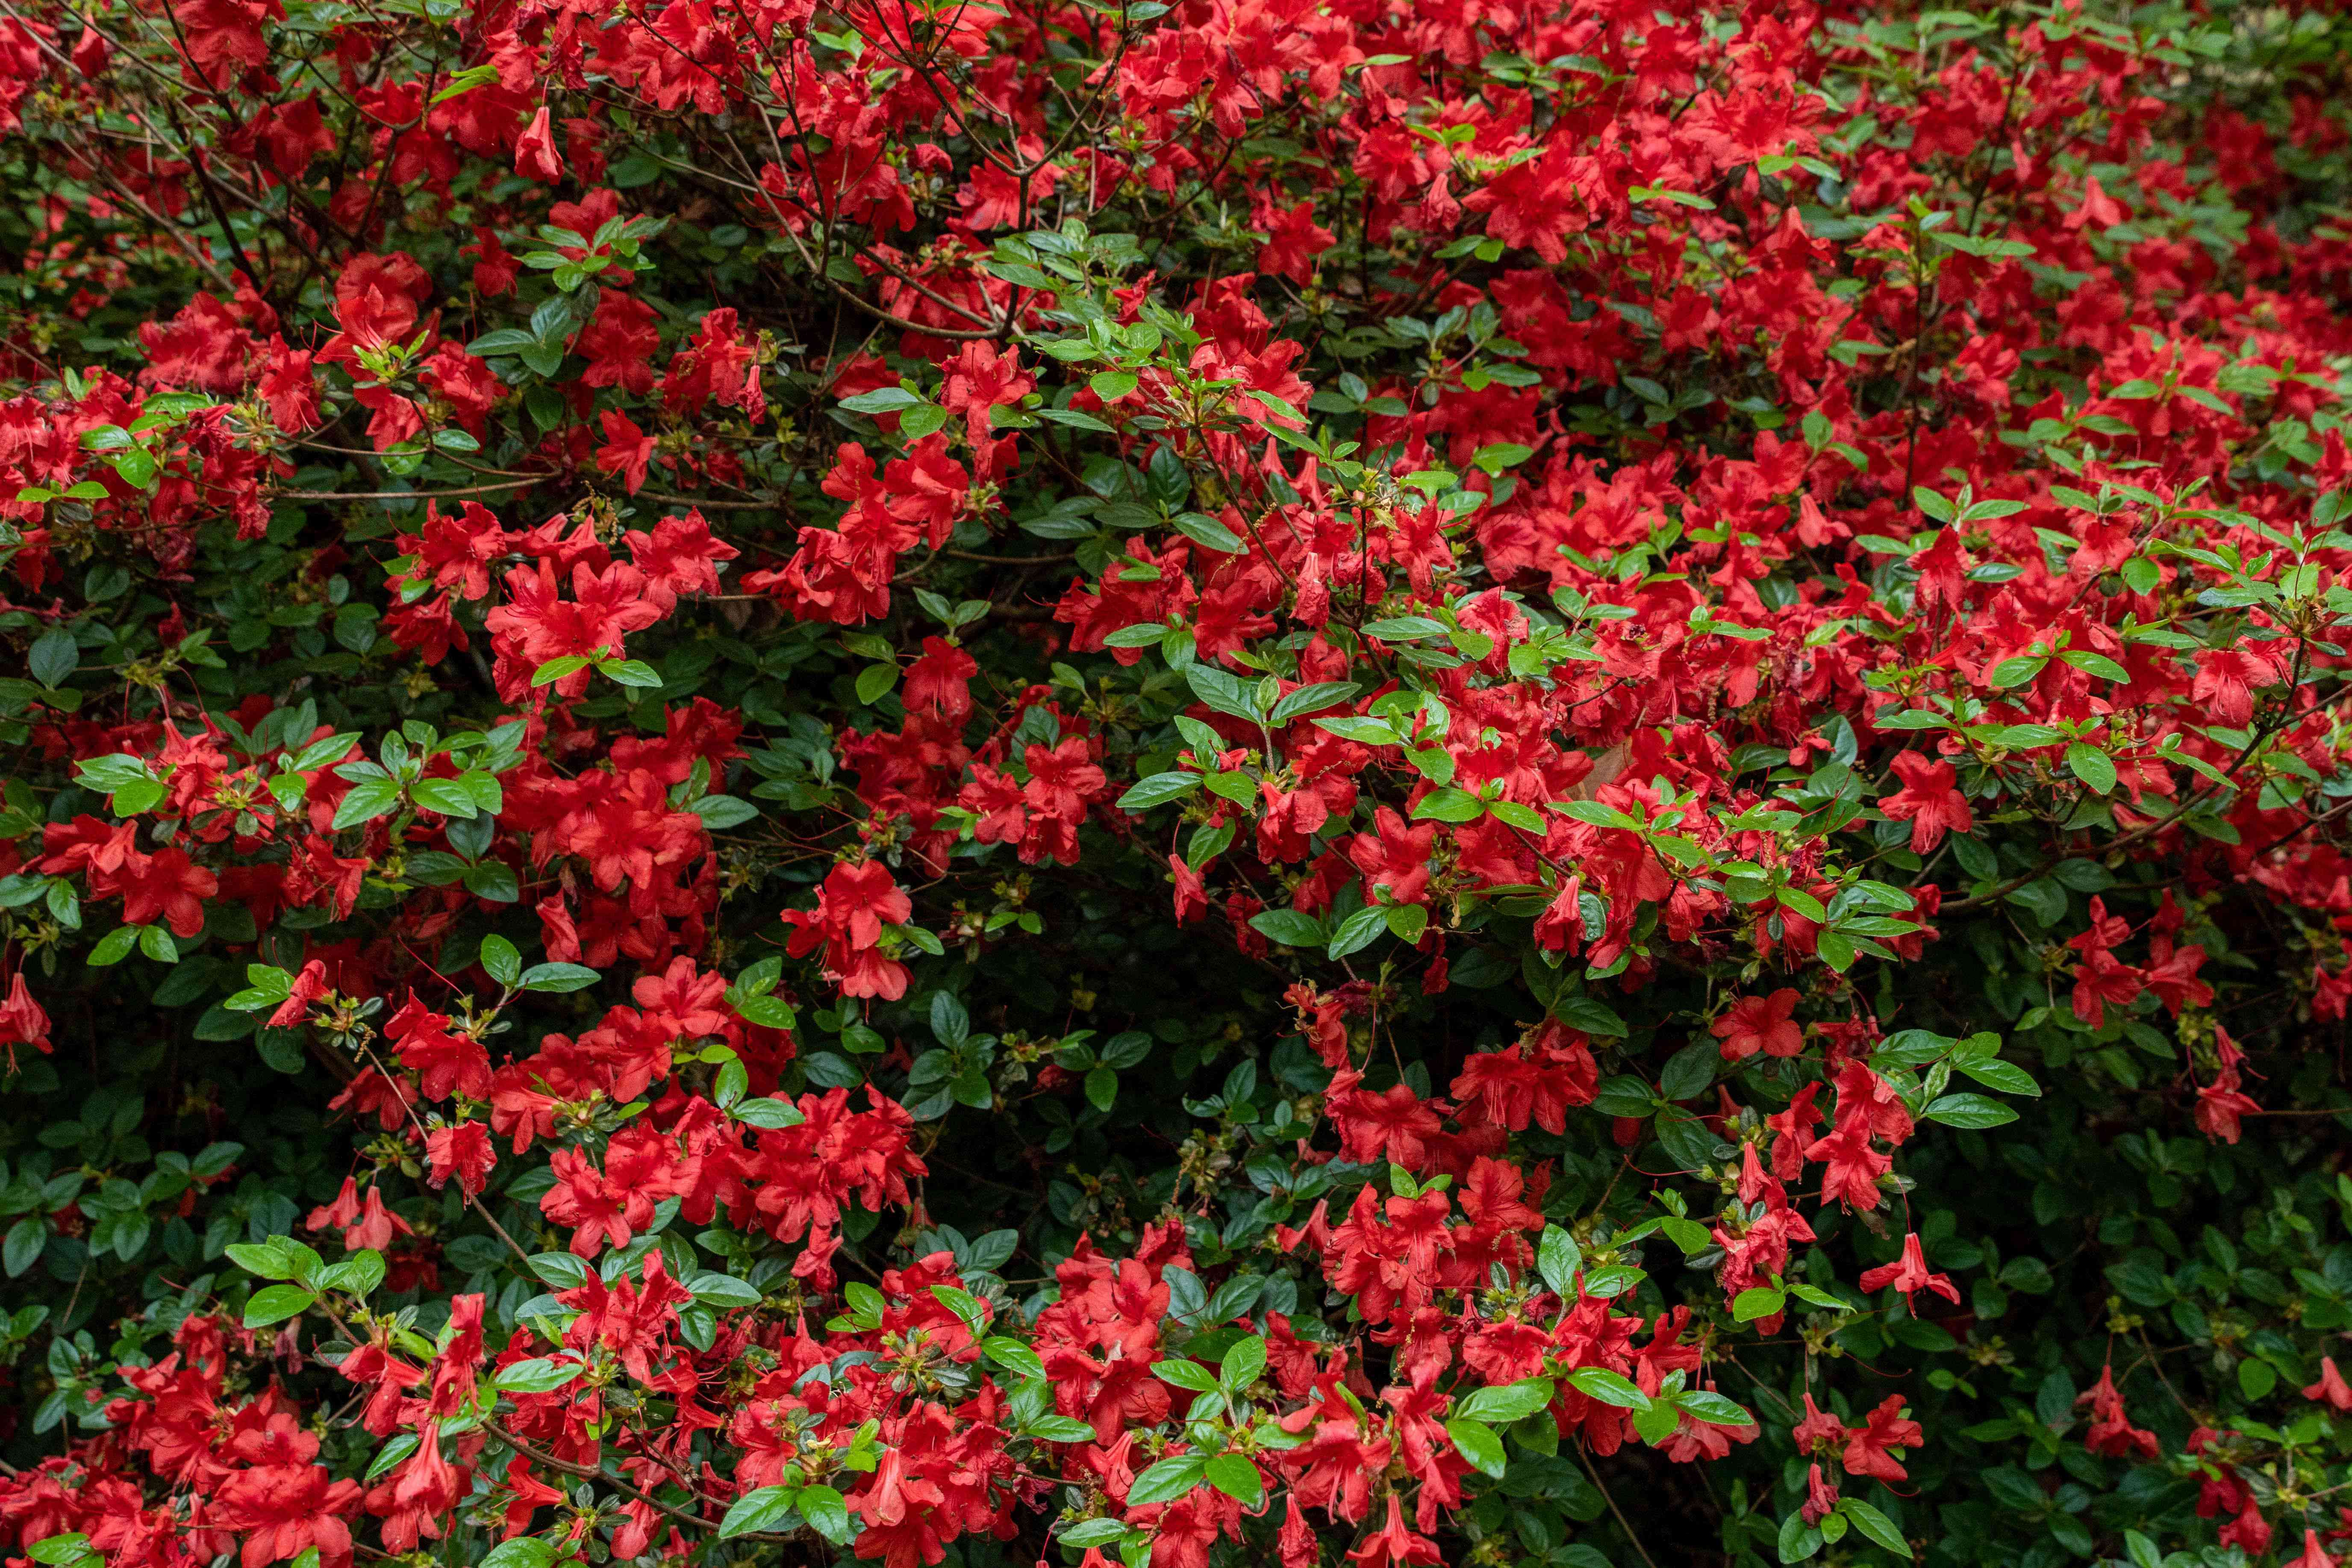 Red azalea bush with large branches full of red flowers and green leaves